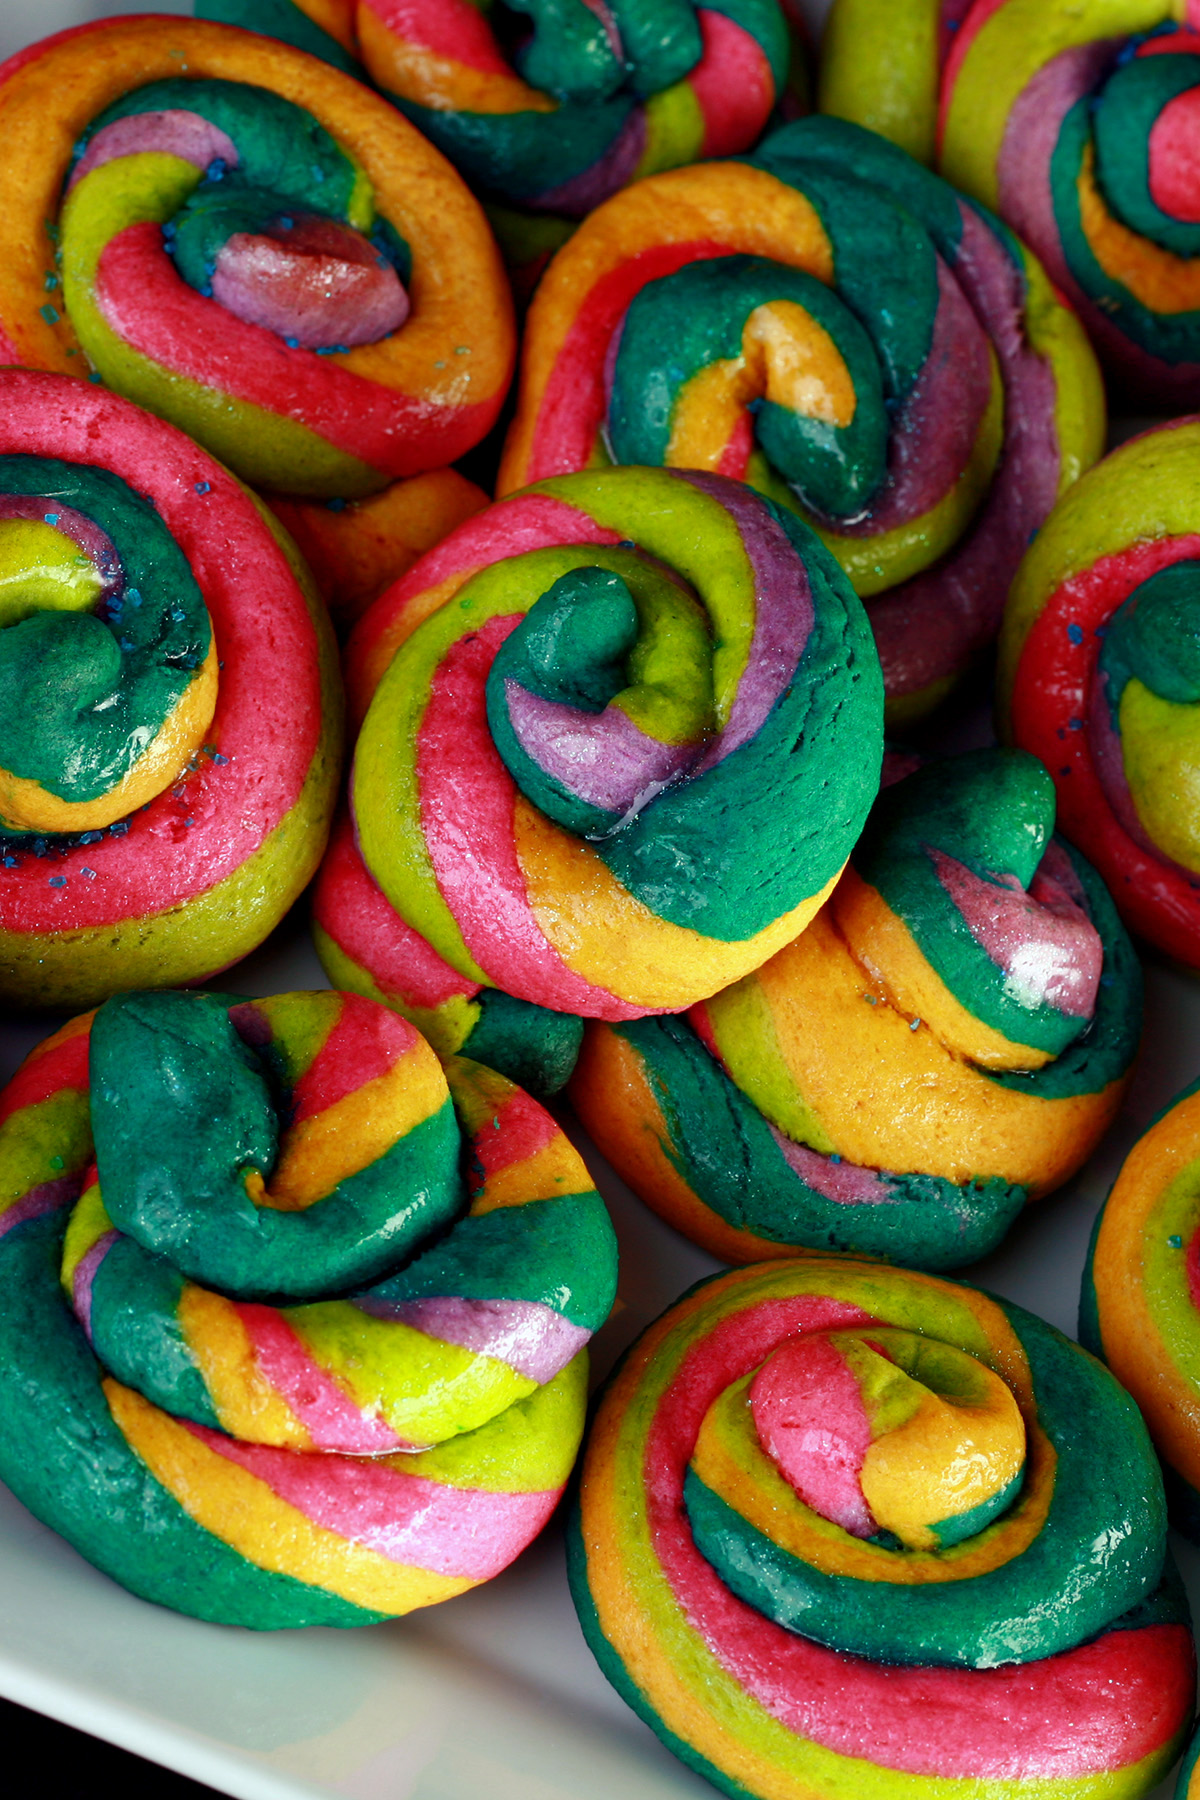 """A close up view of a pile of gluten-free unicorn poop cookies.  They are brightly coloured cookie """"poops"""" made from brightly coloured twists of cookie dough."""